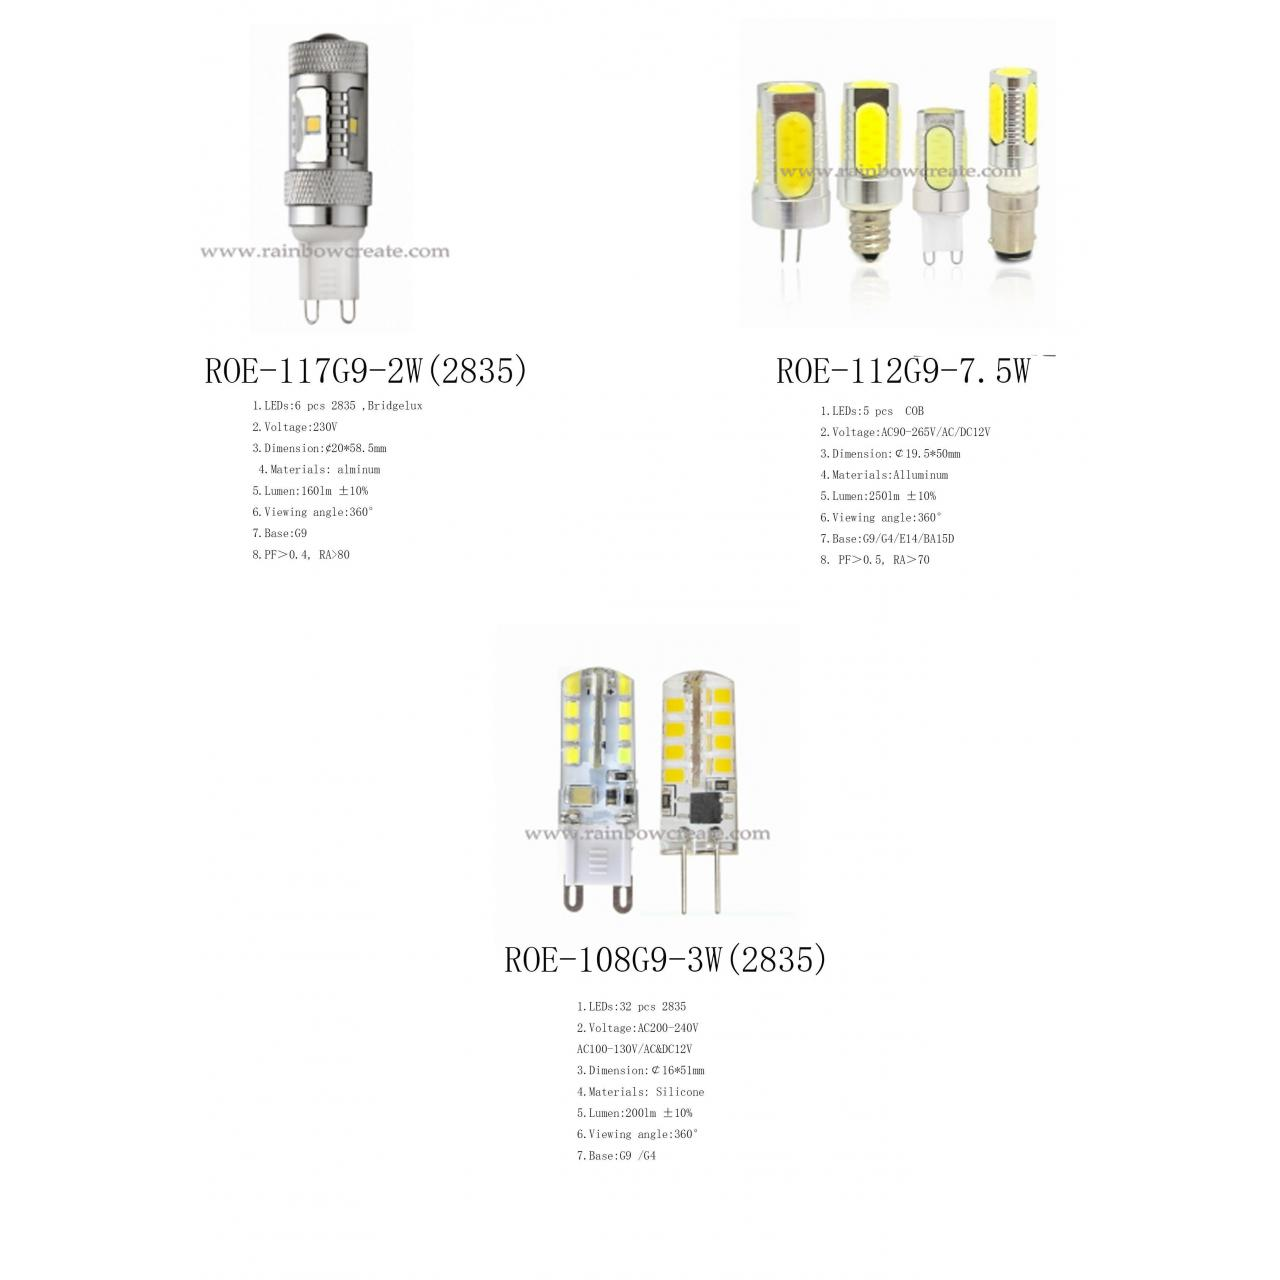 H ton Bay Remote Wiring Diagram besides Wiring Diagrams For Ceiling Fans With Lights furthermore Wiring Diagram For Light Fixture also Light Beam Angle further Color Recessed Lights. on high bay light wiring diagram